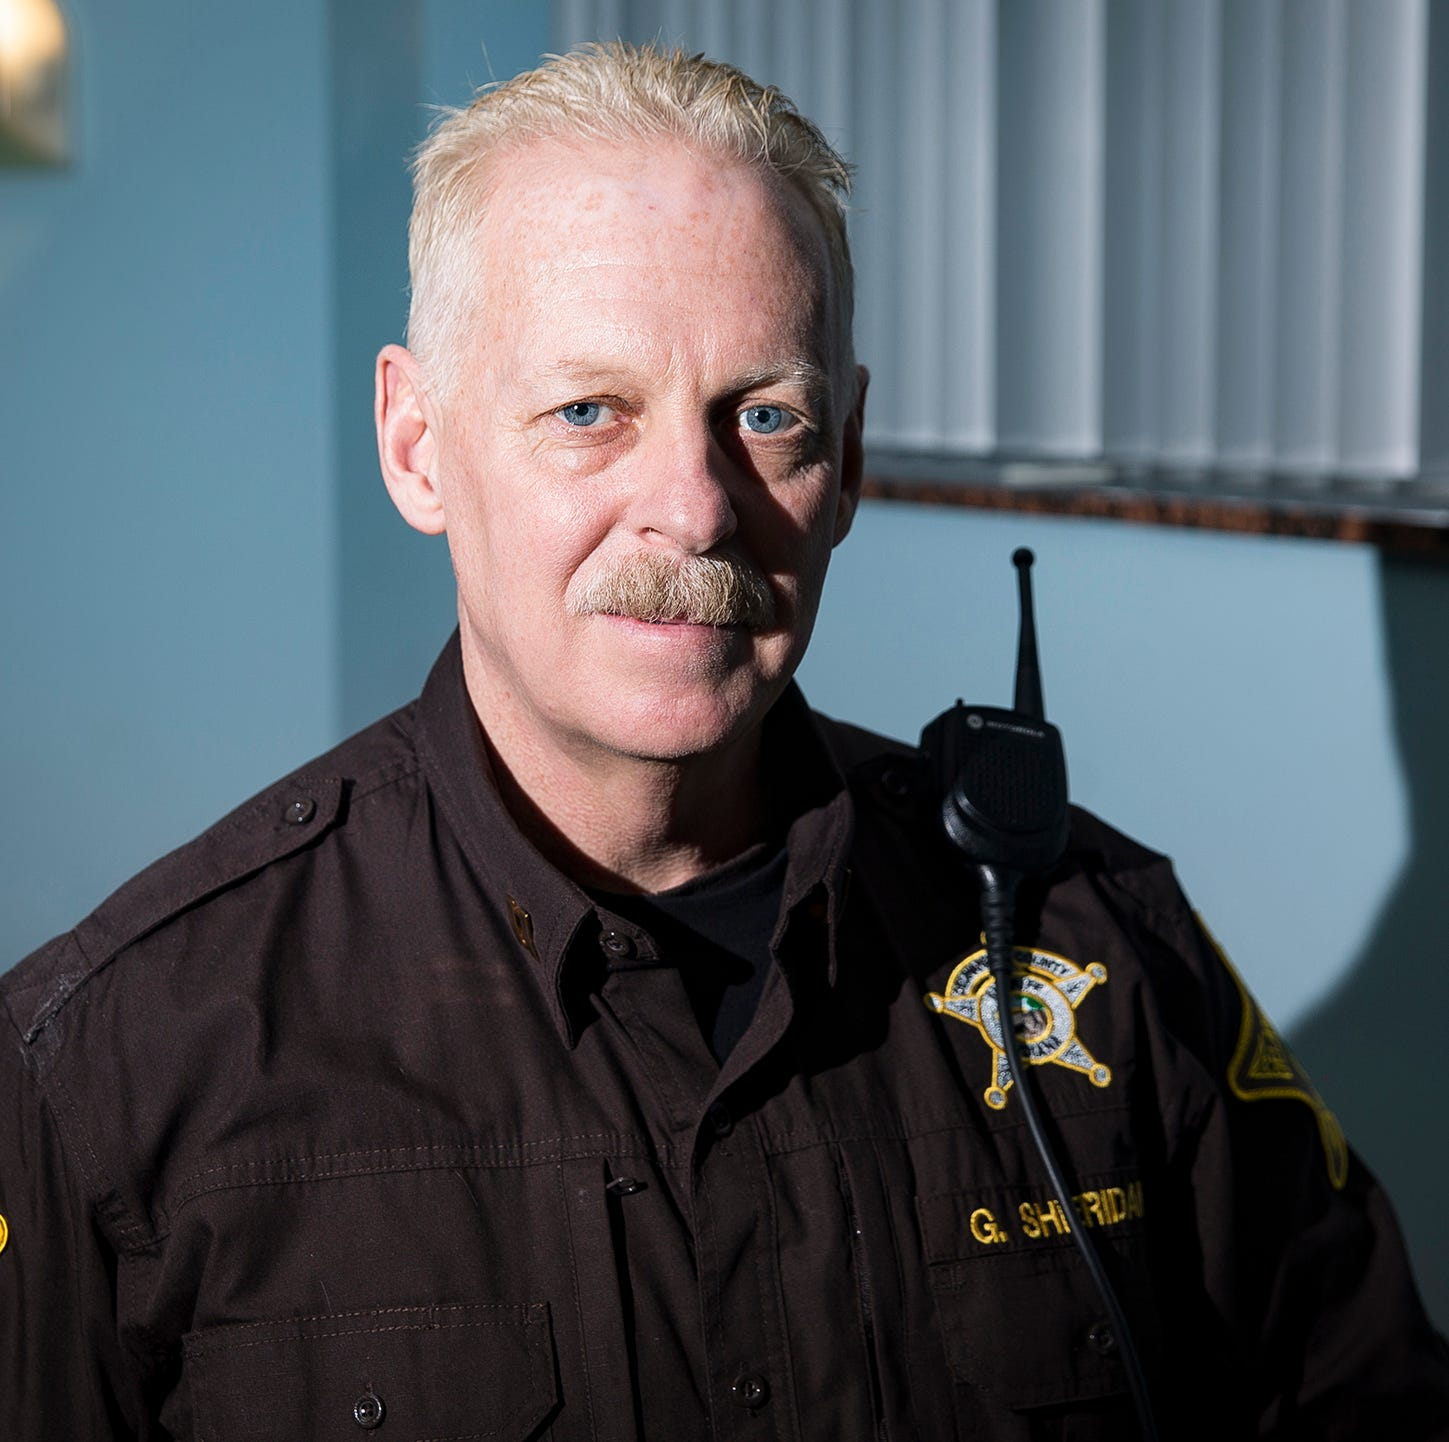 Sheridan retires from sheriff's department, but manhunts to continue